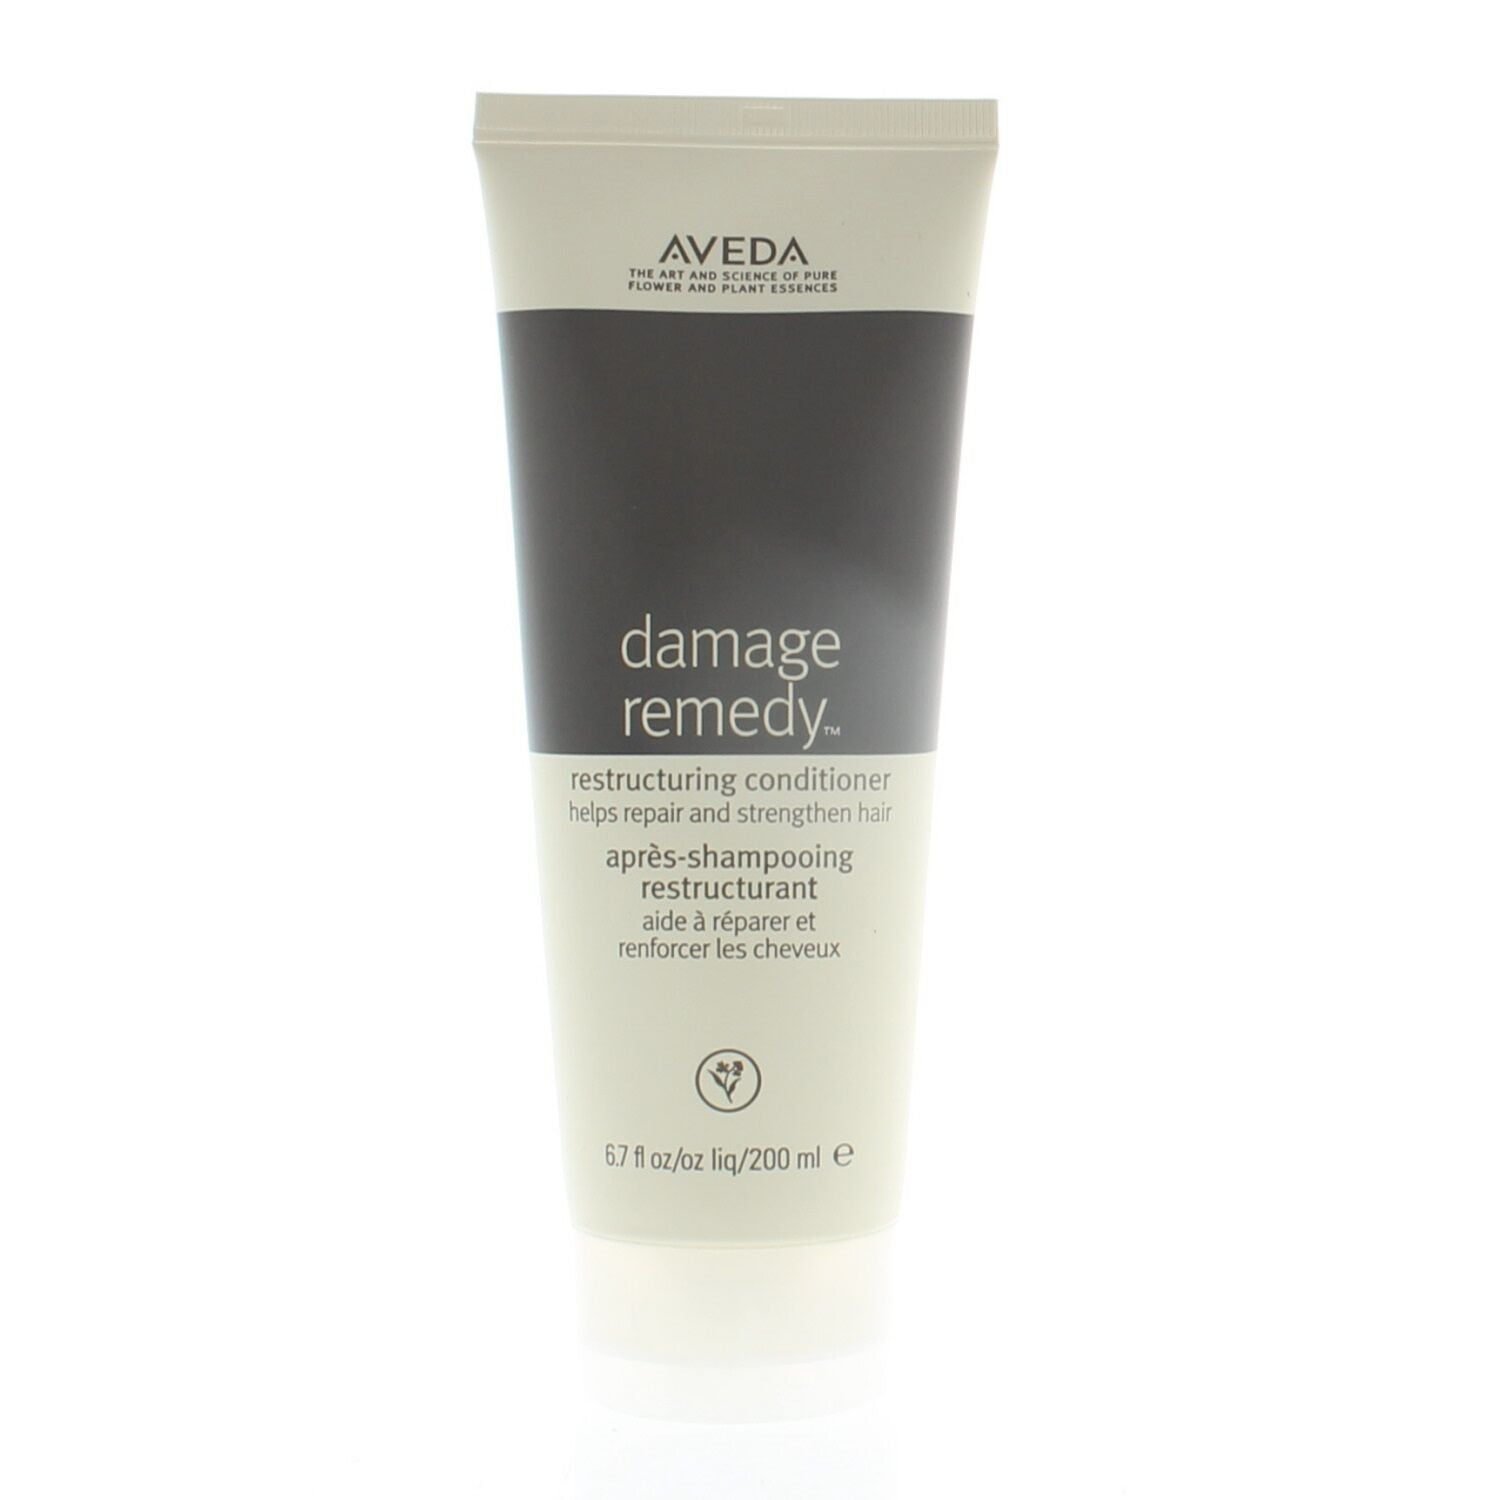 AVEDA - DAMAGE REMEDY RESTRUCTURING CONDITIONER (200 ML) - MyVaniteeCase